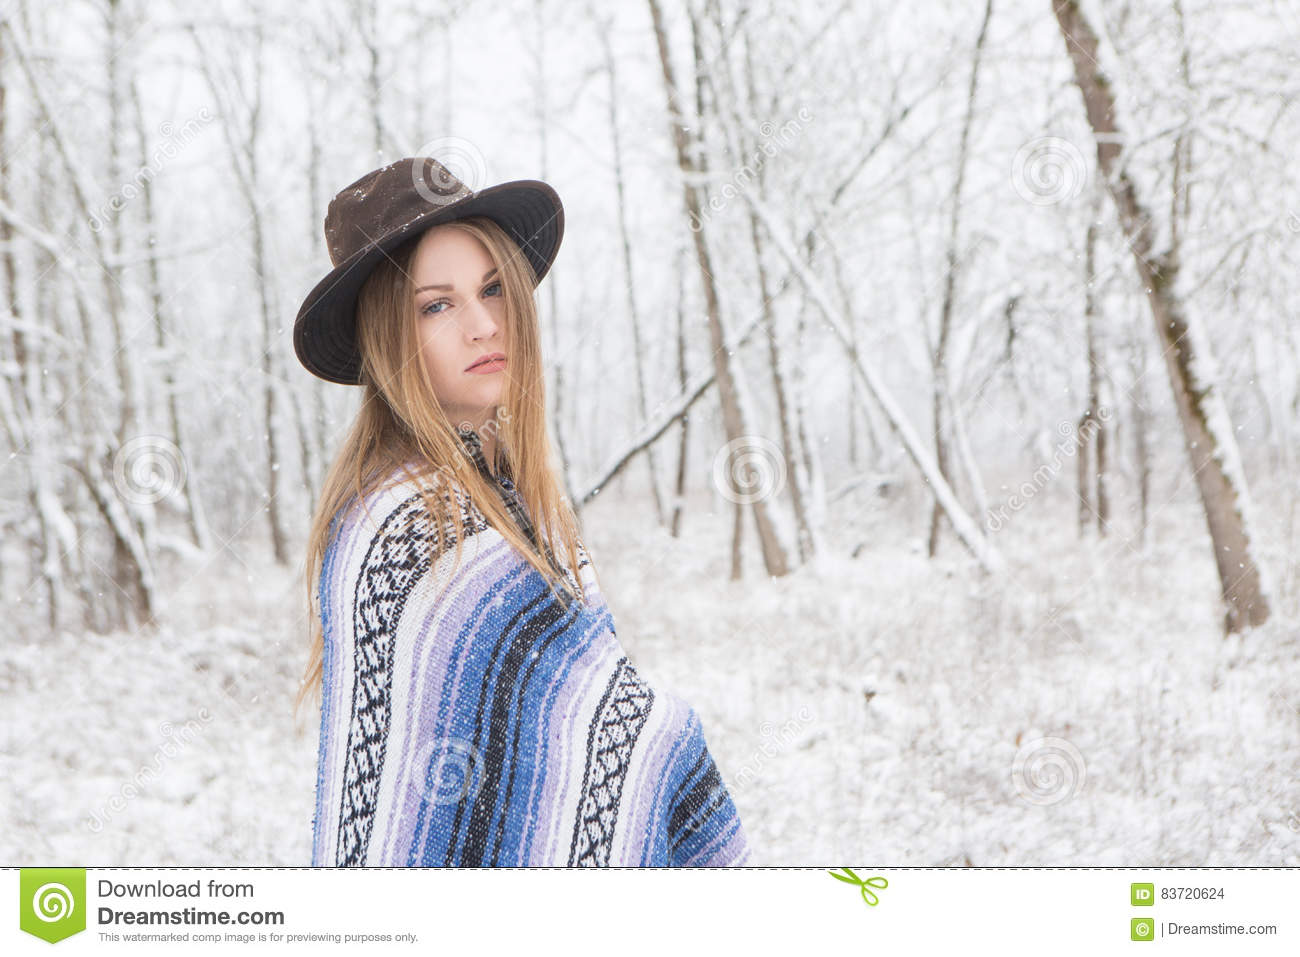 Young Woman Standing In Snow With Bohemian Style Hat And Blanket. Stock Photo